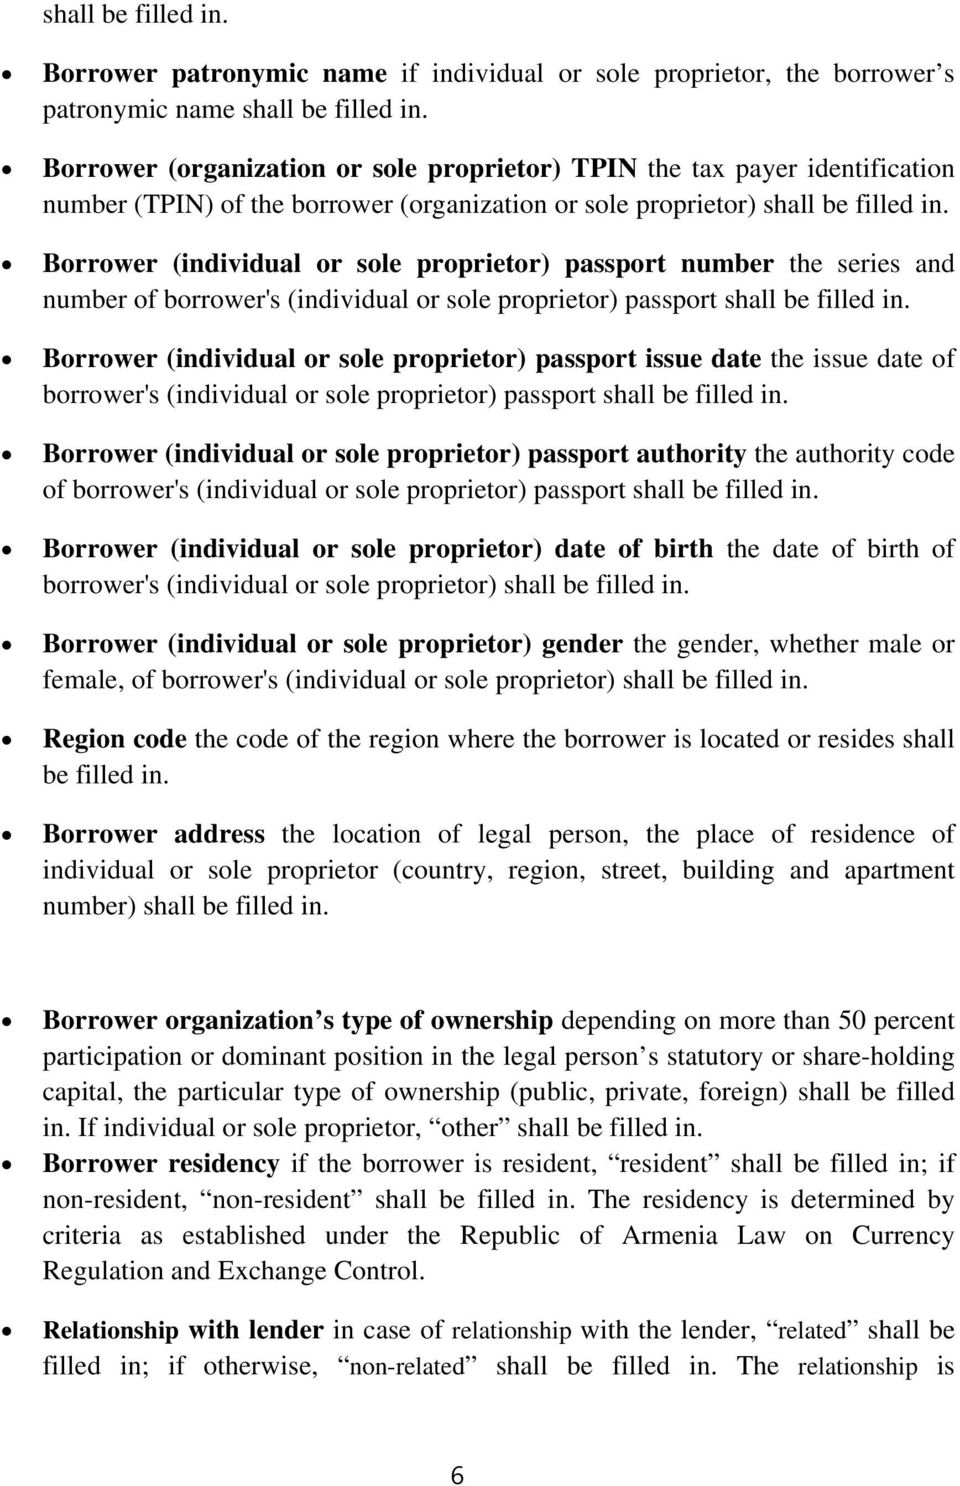 proprietor) passport issue date the issue date of borrower's (individual or sole proprietor) passport Borrower (individual or sole proprietor) passport authority the authority code of borrower's